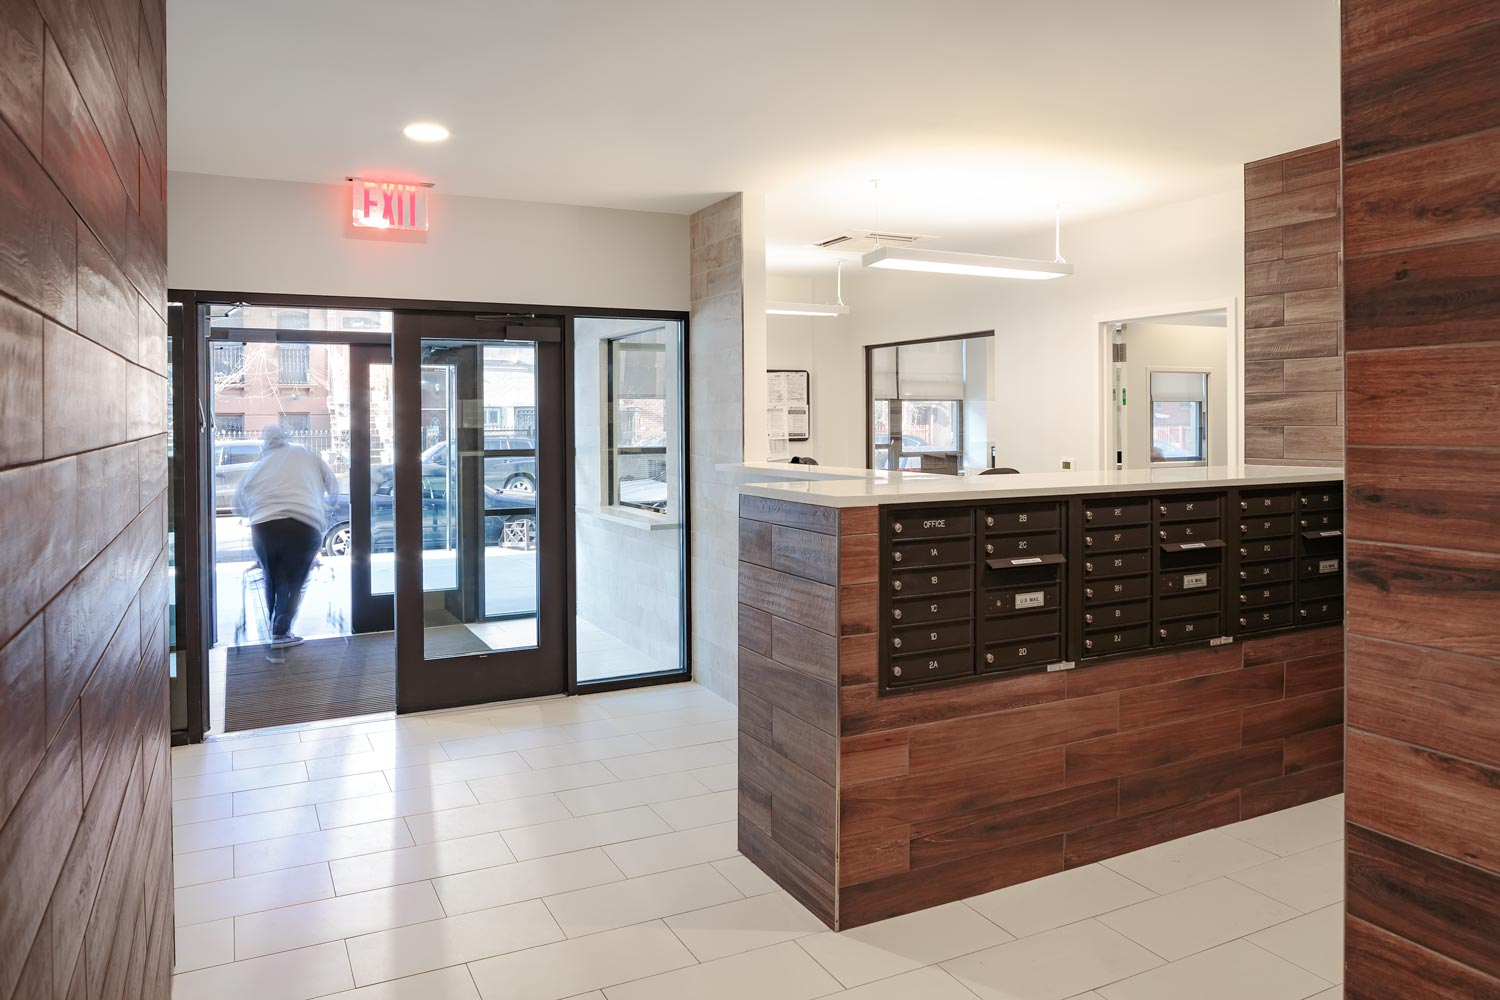 Support offices at Gates Avenue Residence are located off the entry